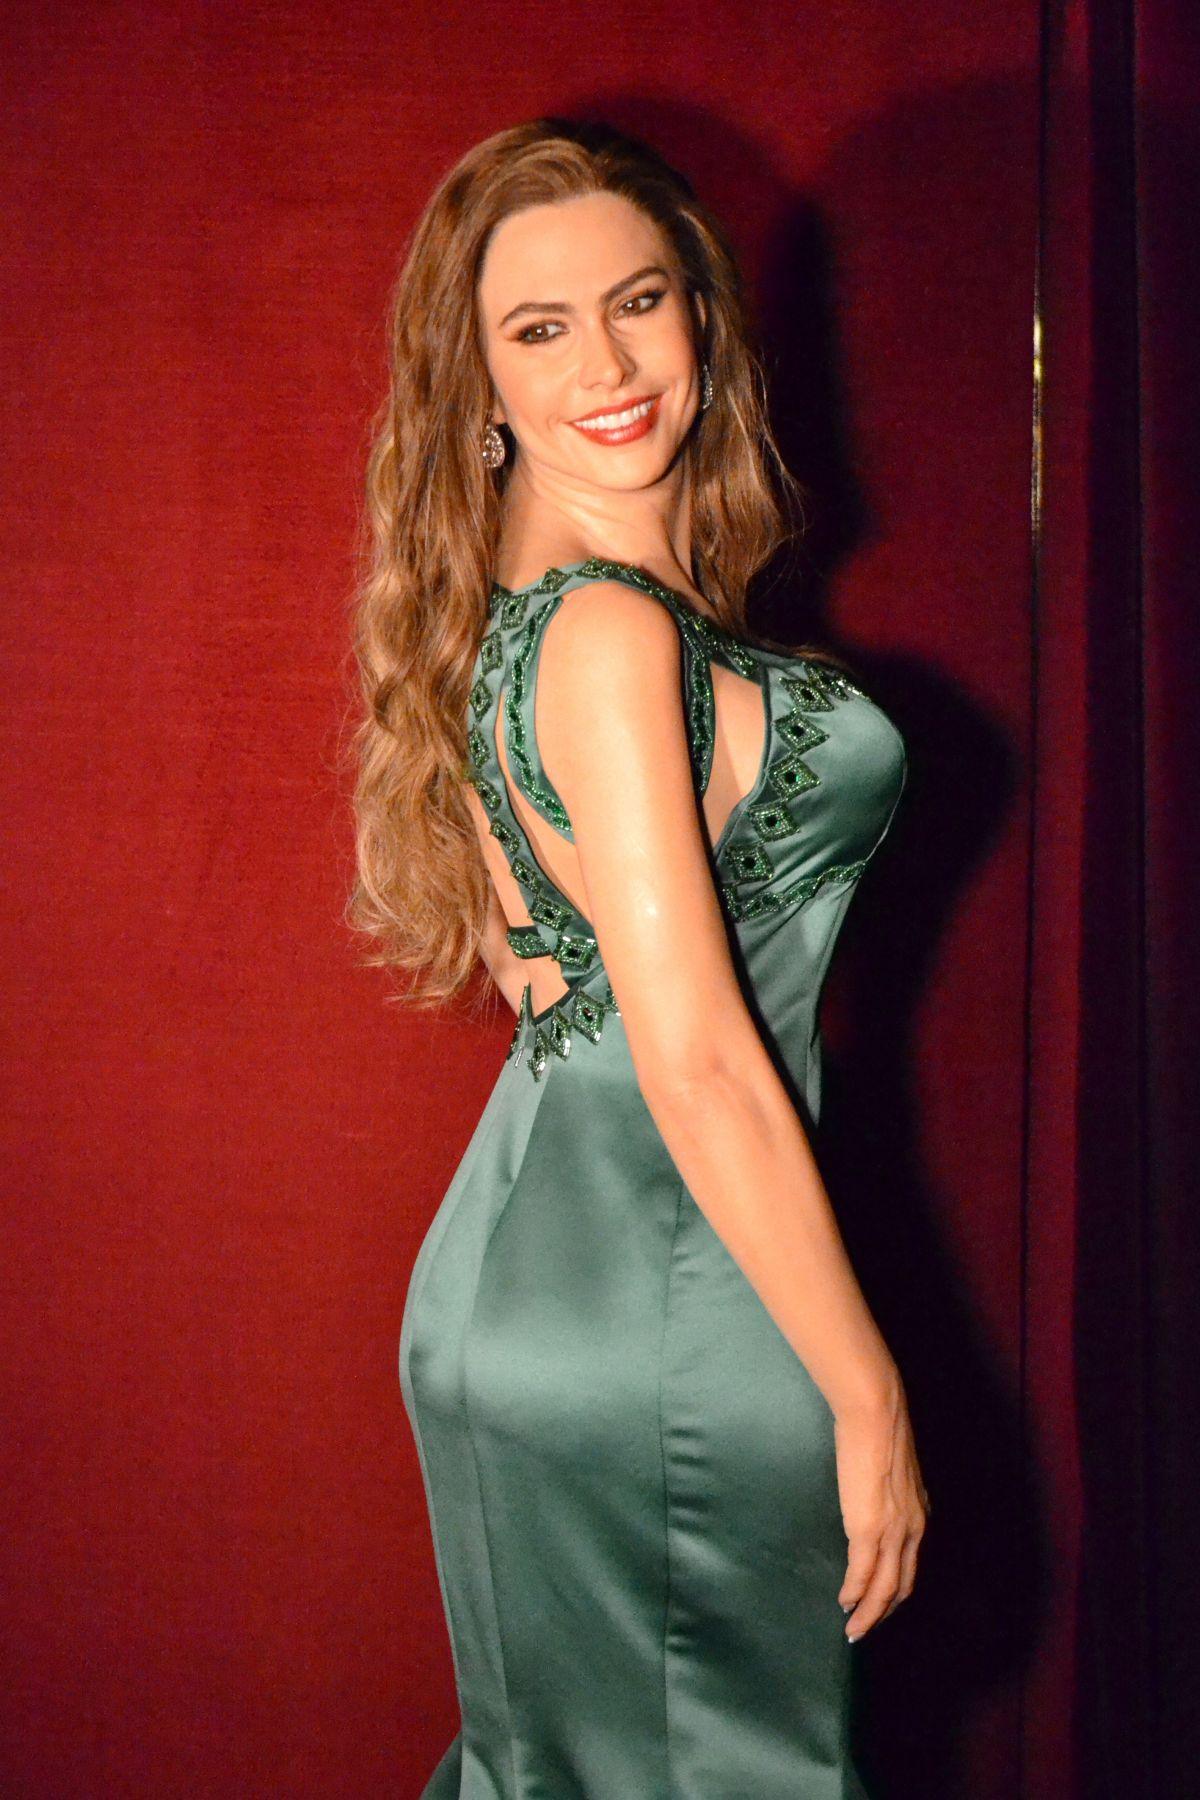 SOFIA VERGARA in Madrid Wax Museum 11/17/2015